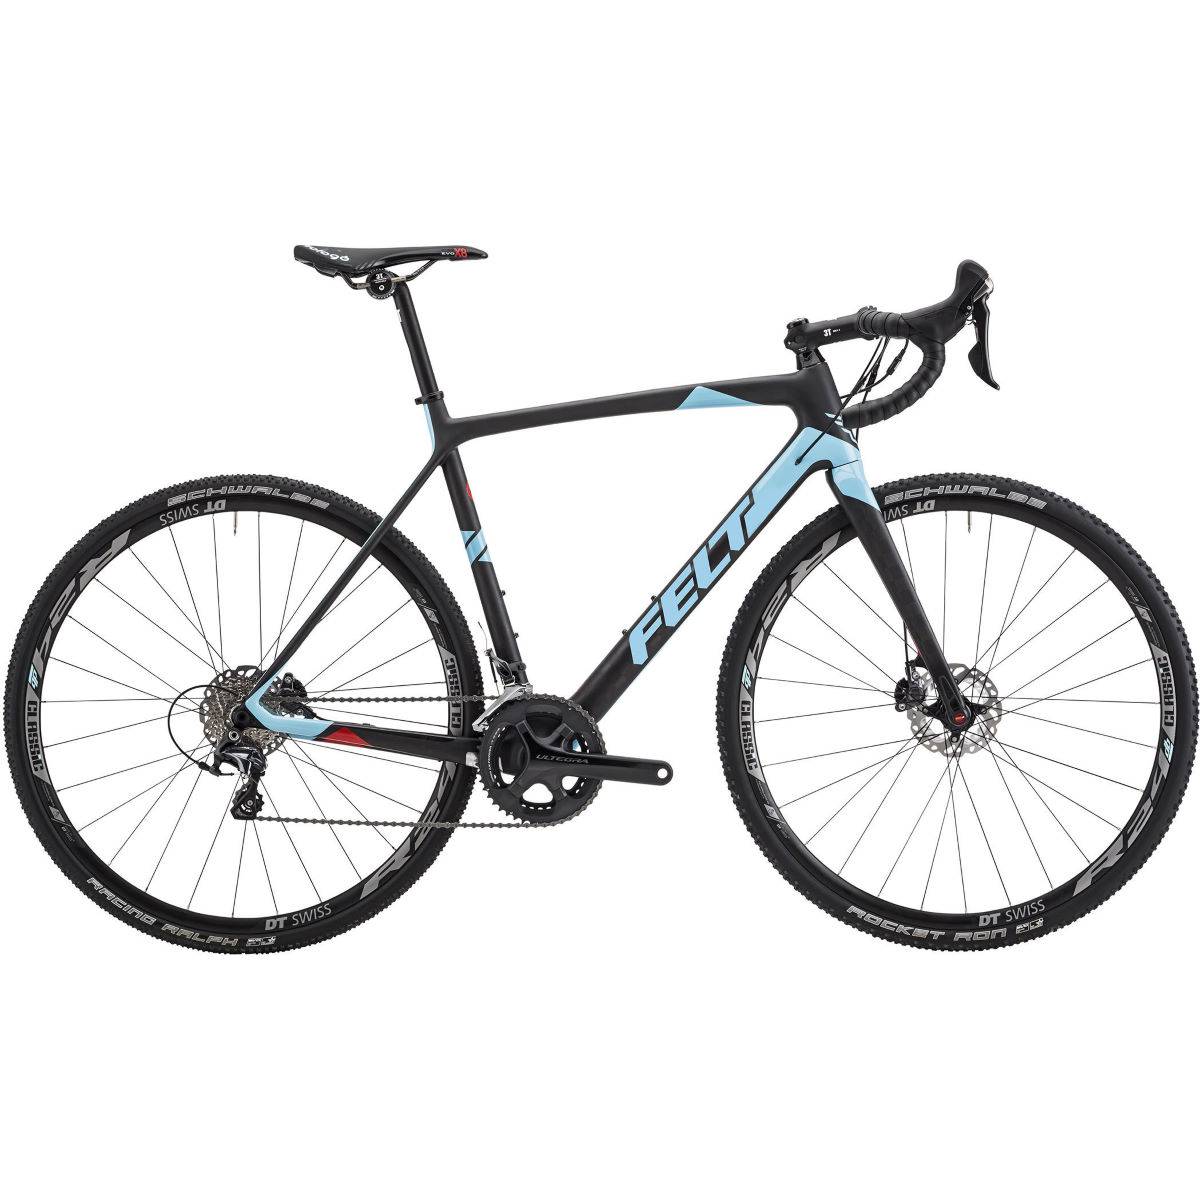 Vélo de cyclocross Felt F3x (Ultegra, 2017) - 57cm Stock Bike